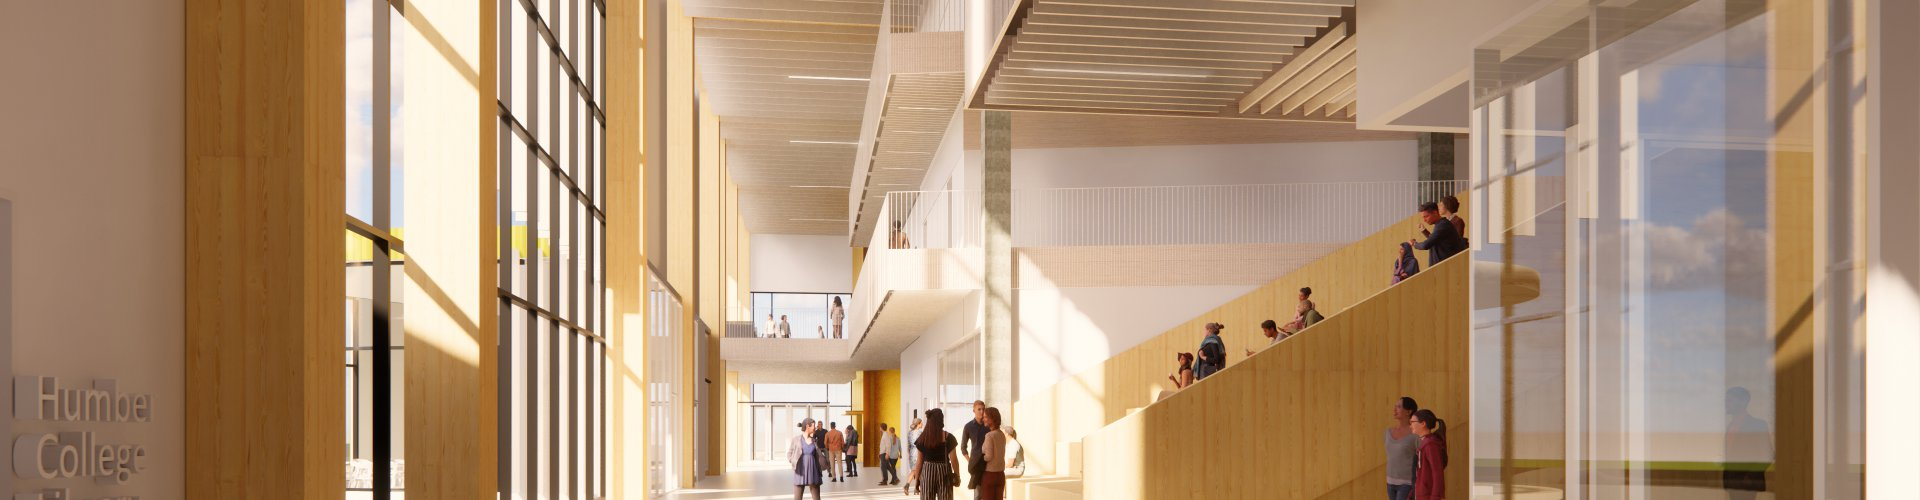 Rendering  of a large bright & wide hallway with tall windows